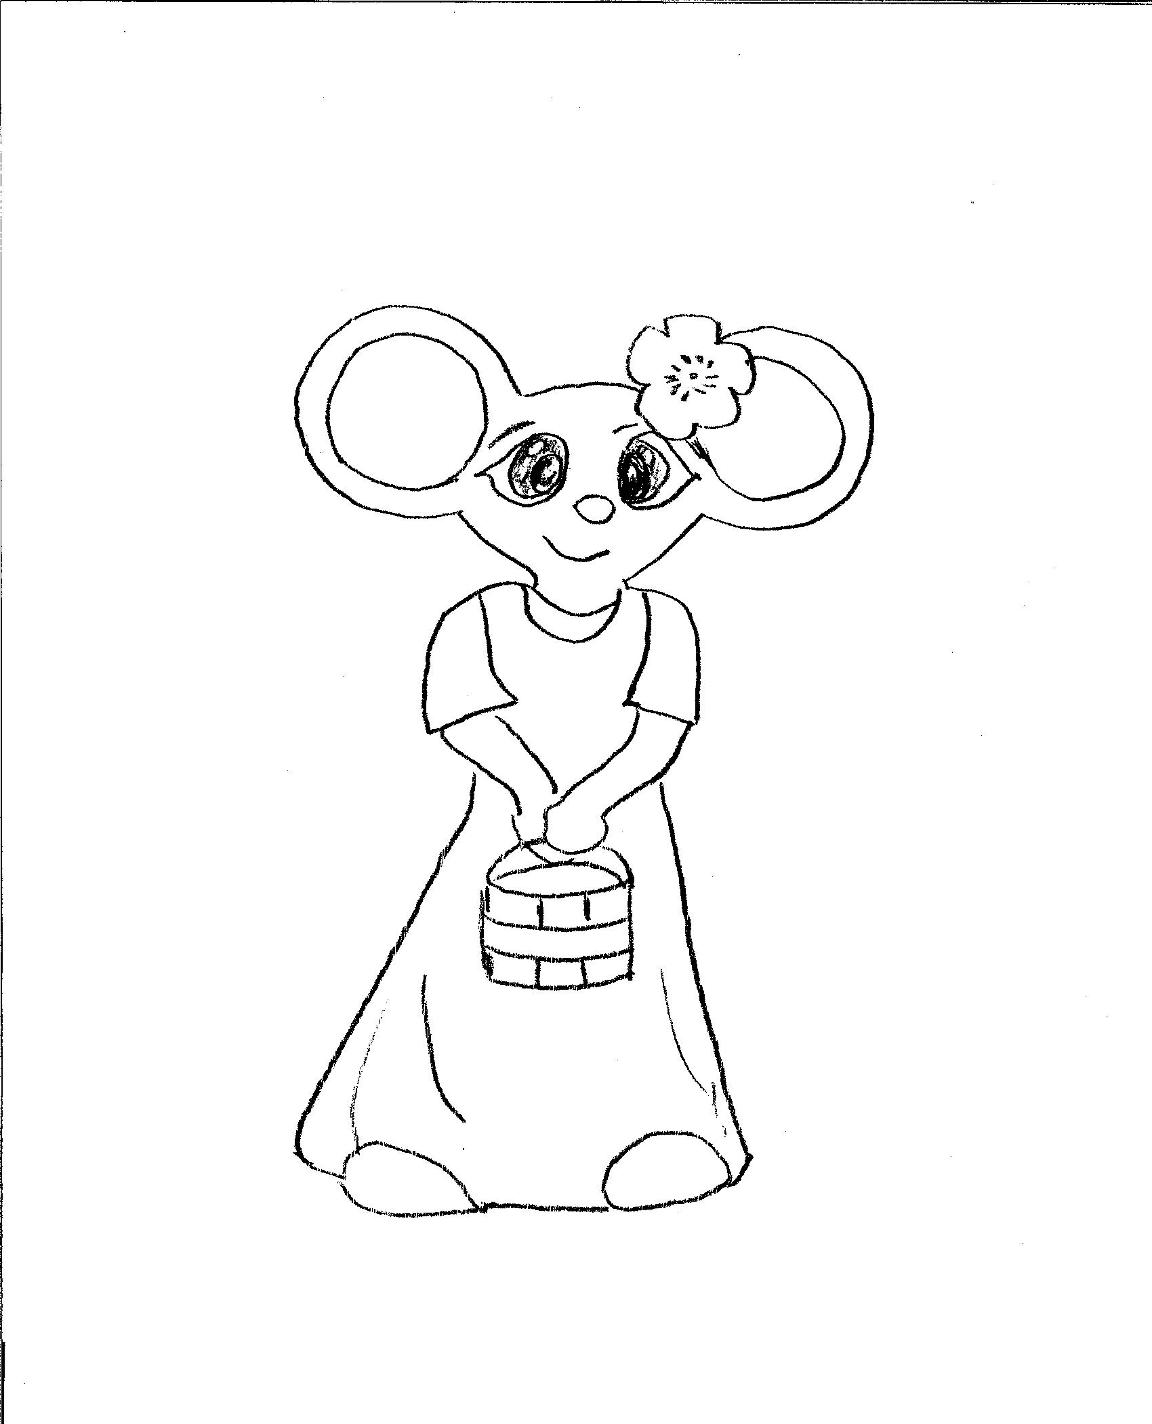 little orphan annie coloring pages free annie cliparts download free clip art free clip art orphan coloring pages little annie